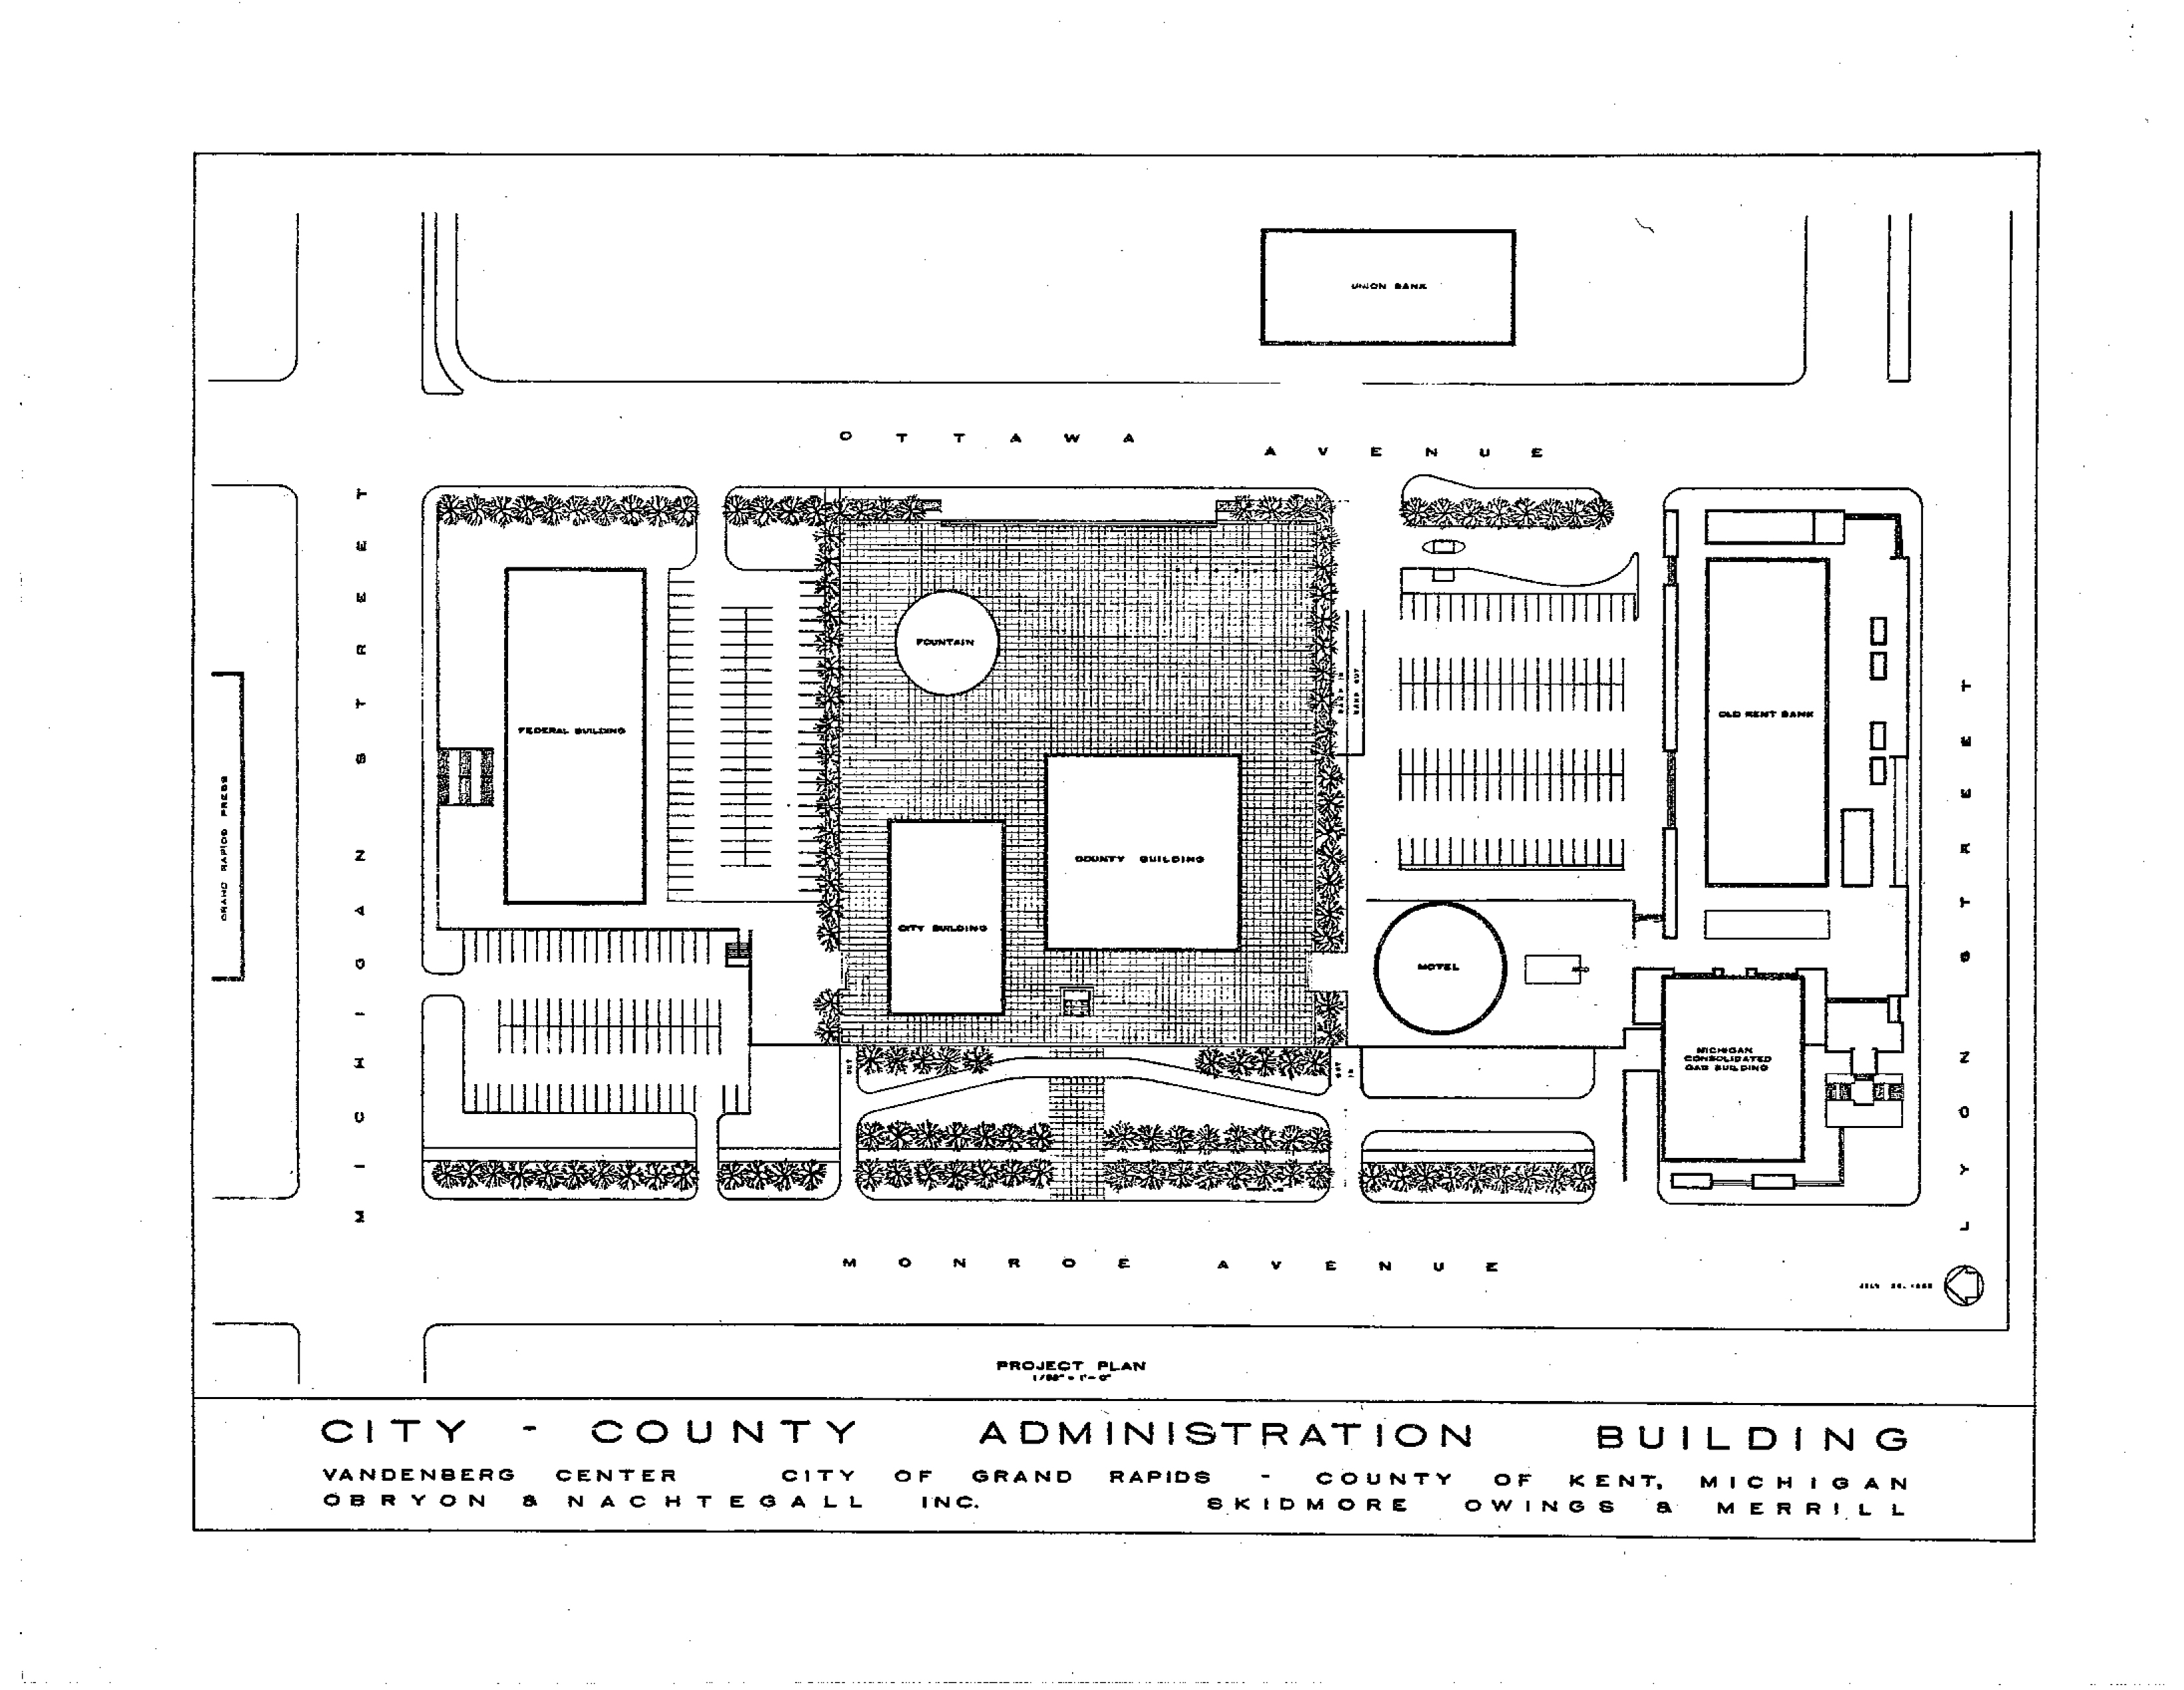 small resolution of 1965 project plan of city county complex showing fountain feature